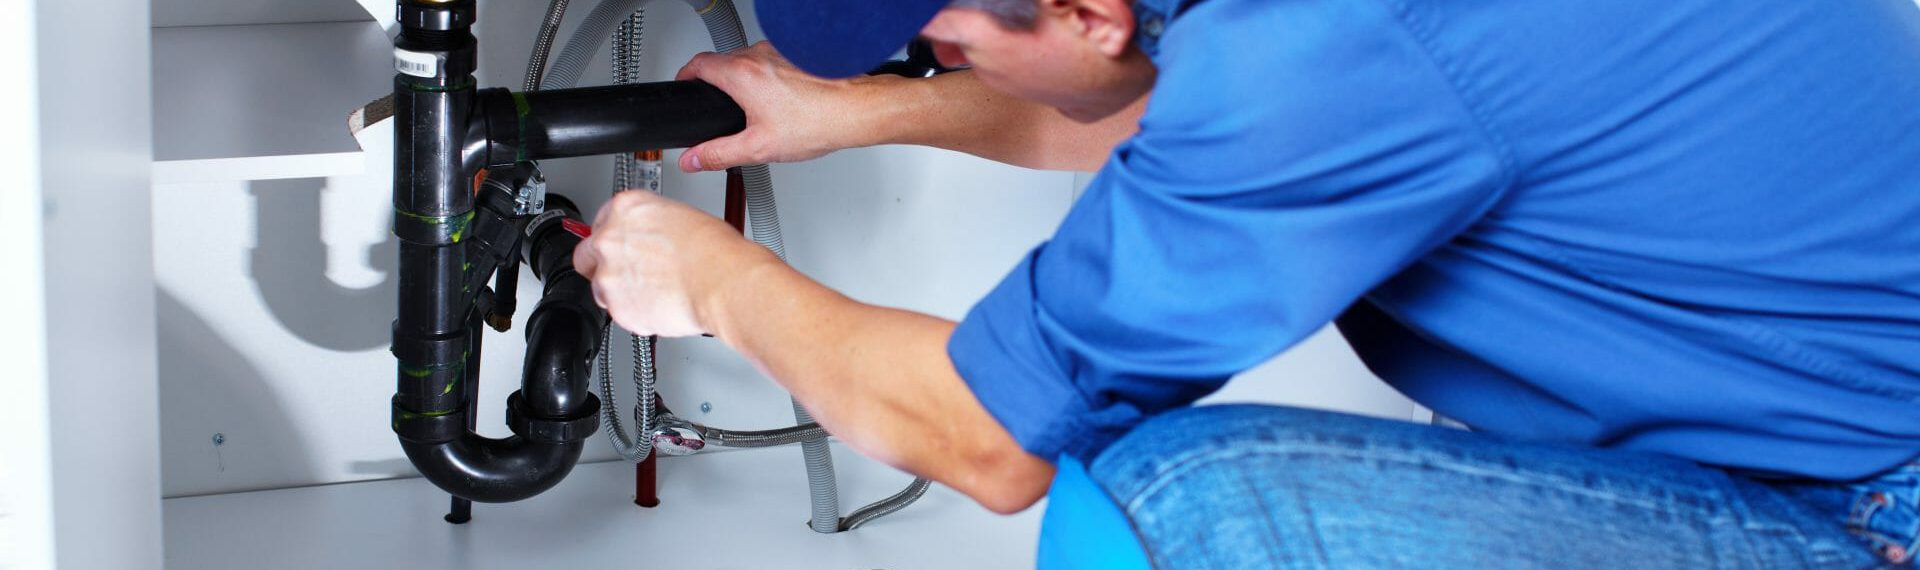 What is Plumber's Public Liability Insurance & what does it cover?